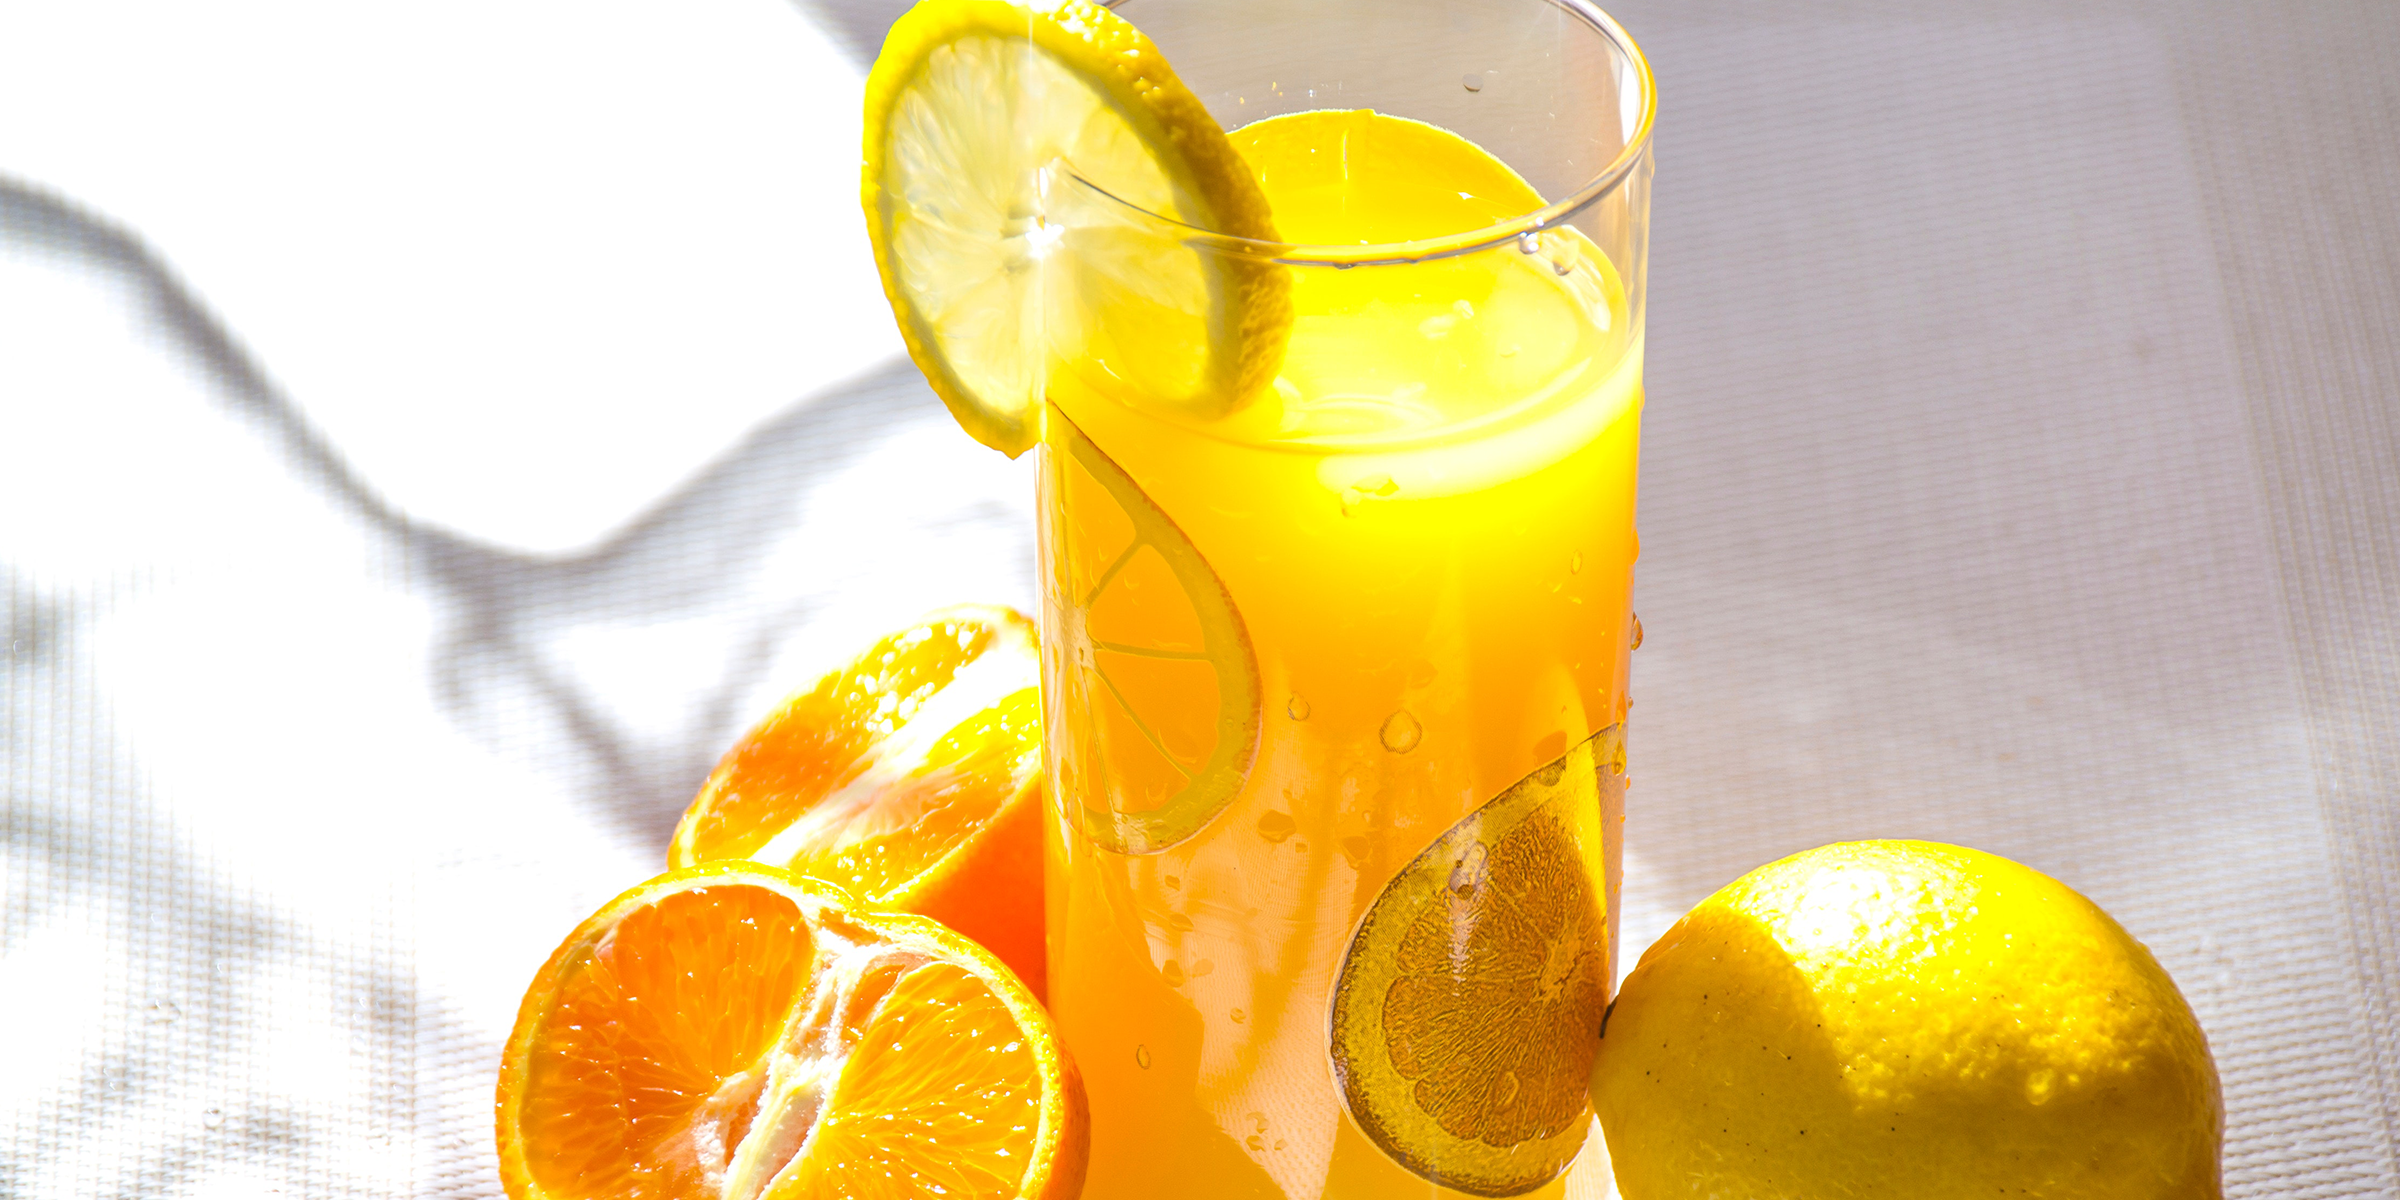 Vitamin C to help with adhd (attention deficit hyperactivity disorder)